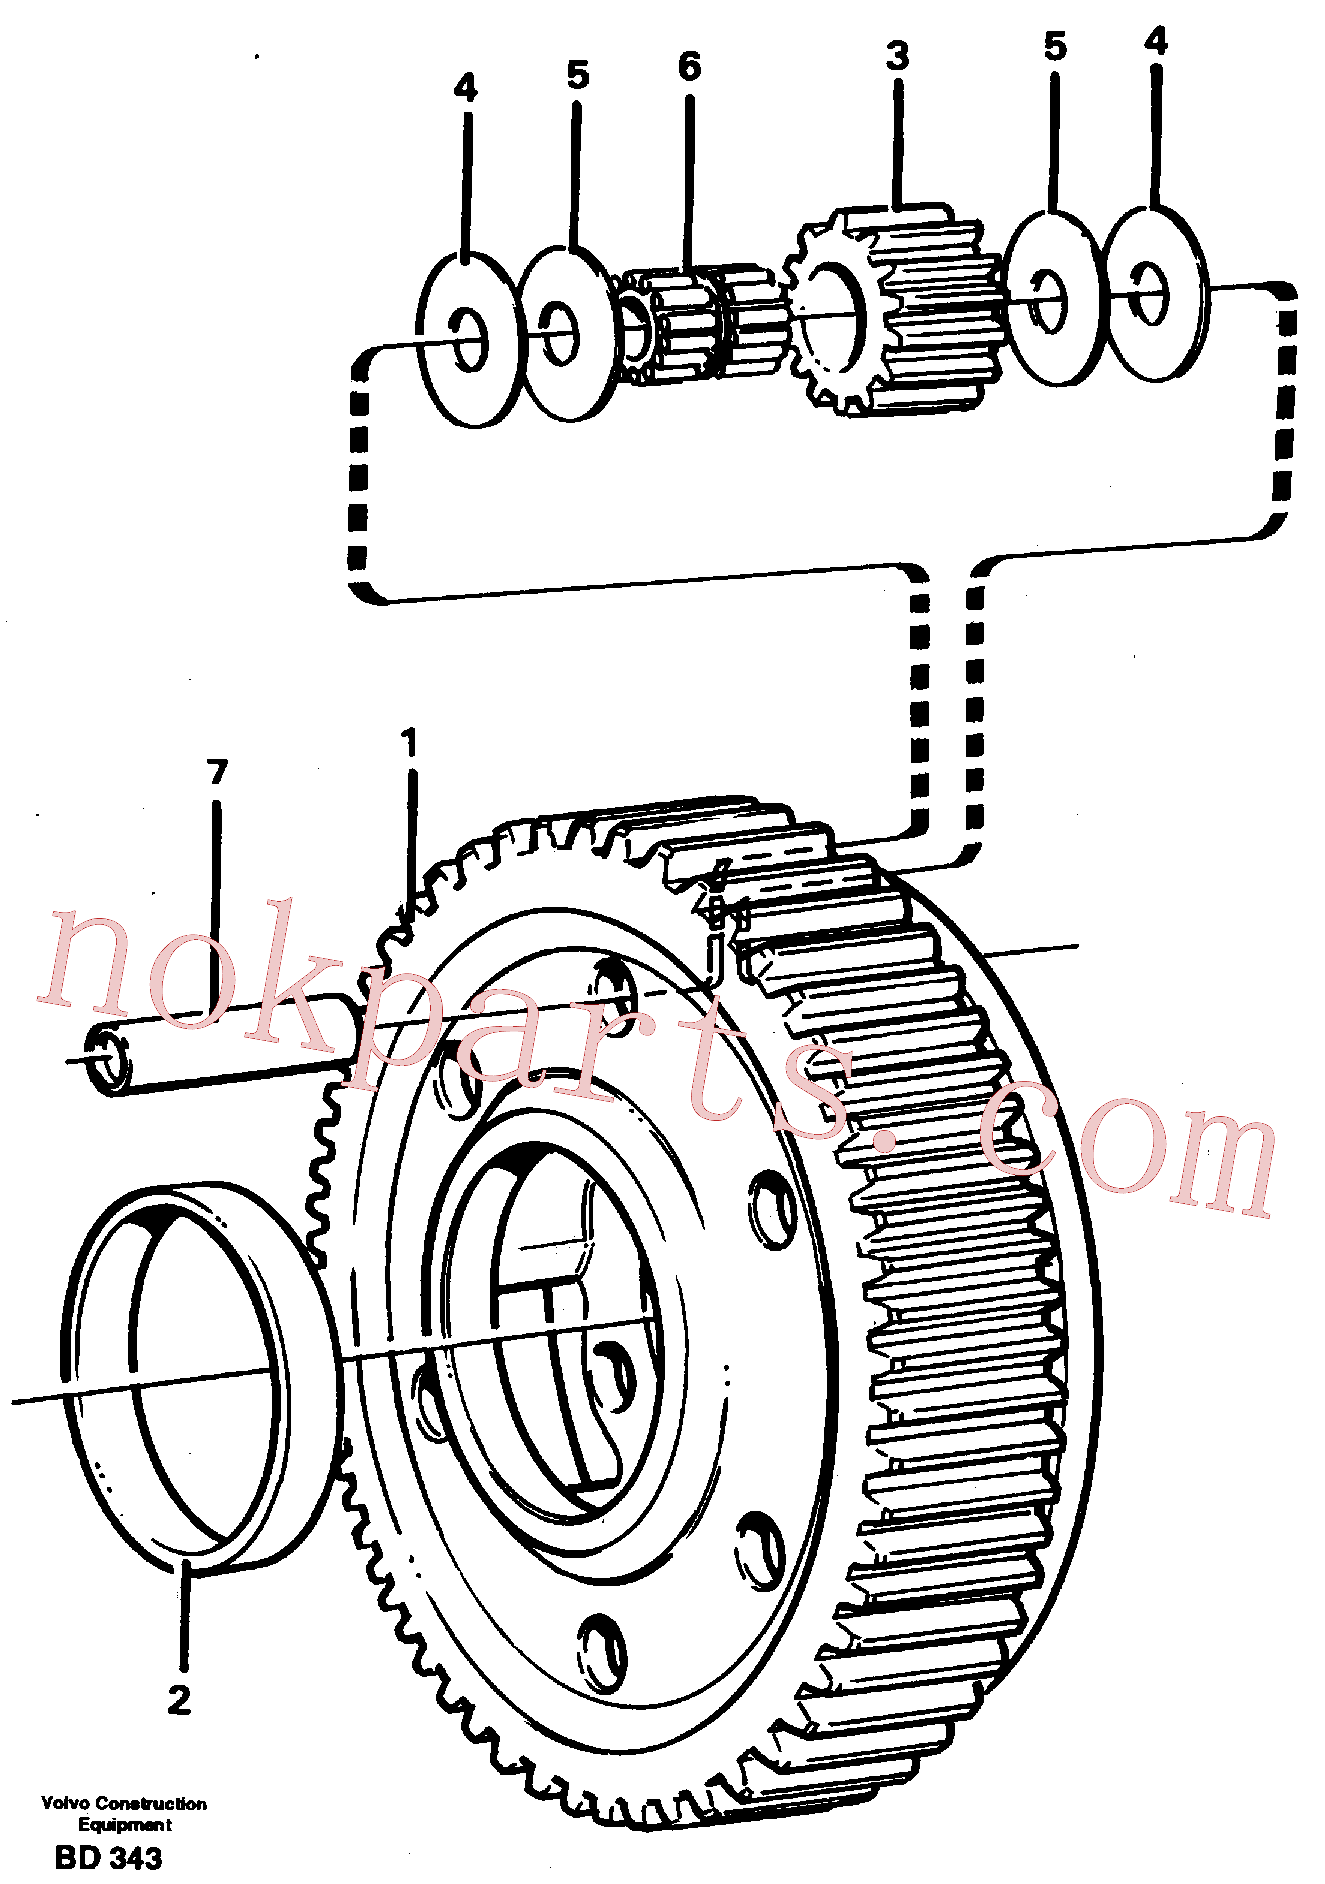 VOE11037424 for Volvo Planet kit, stage 5(BD343 assembly)